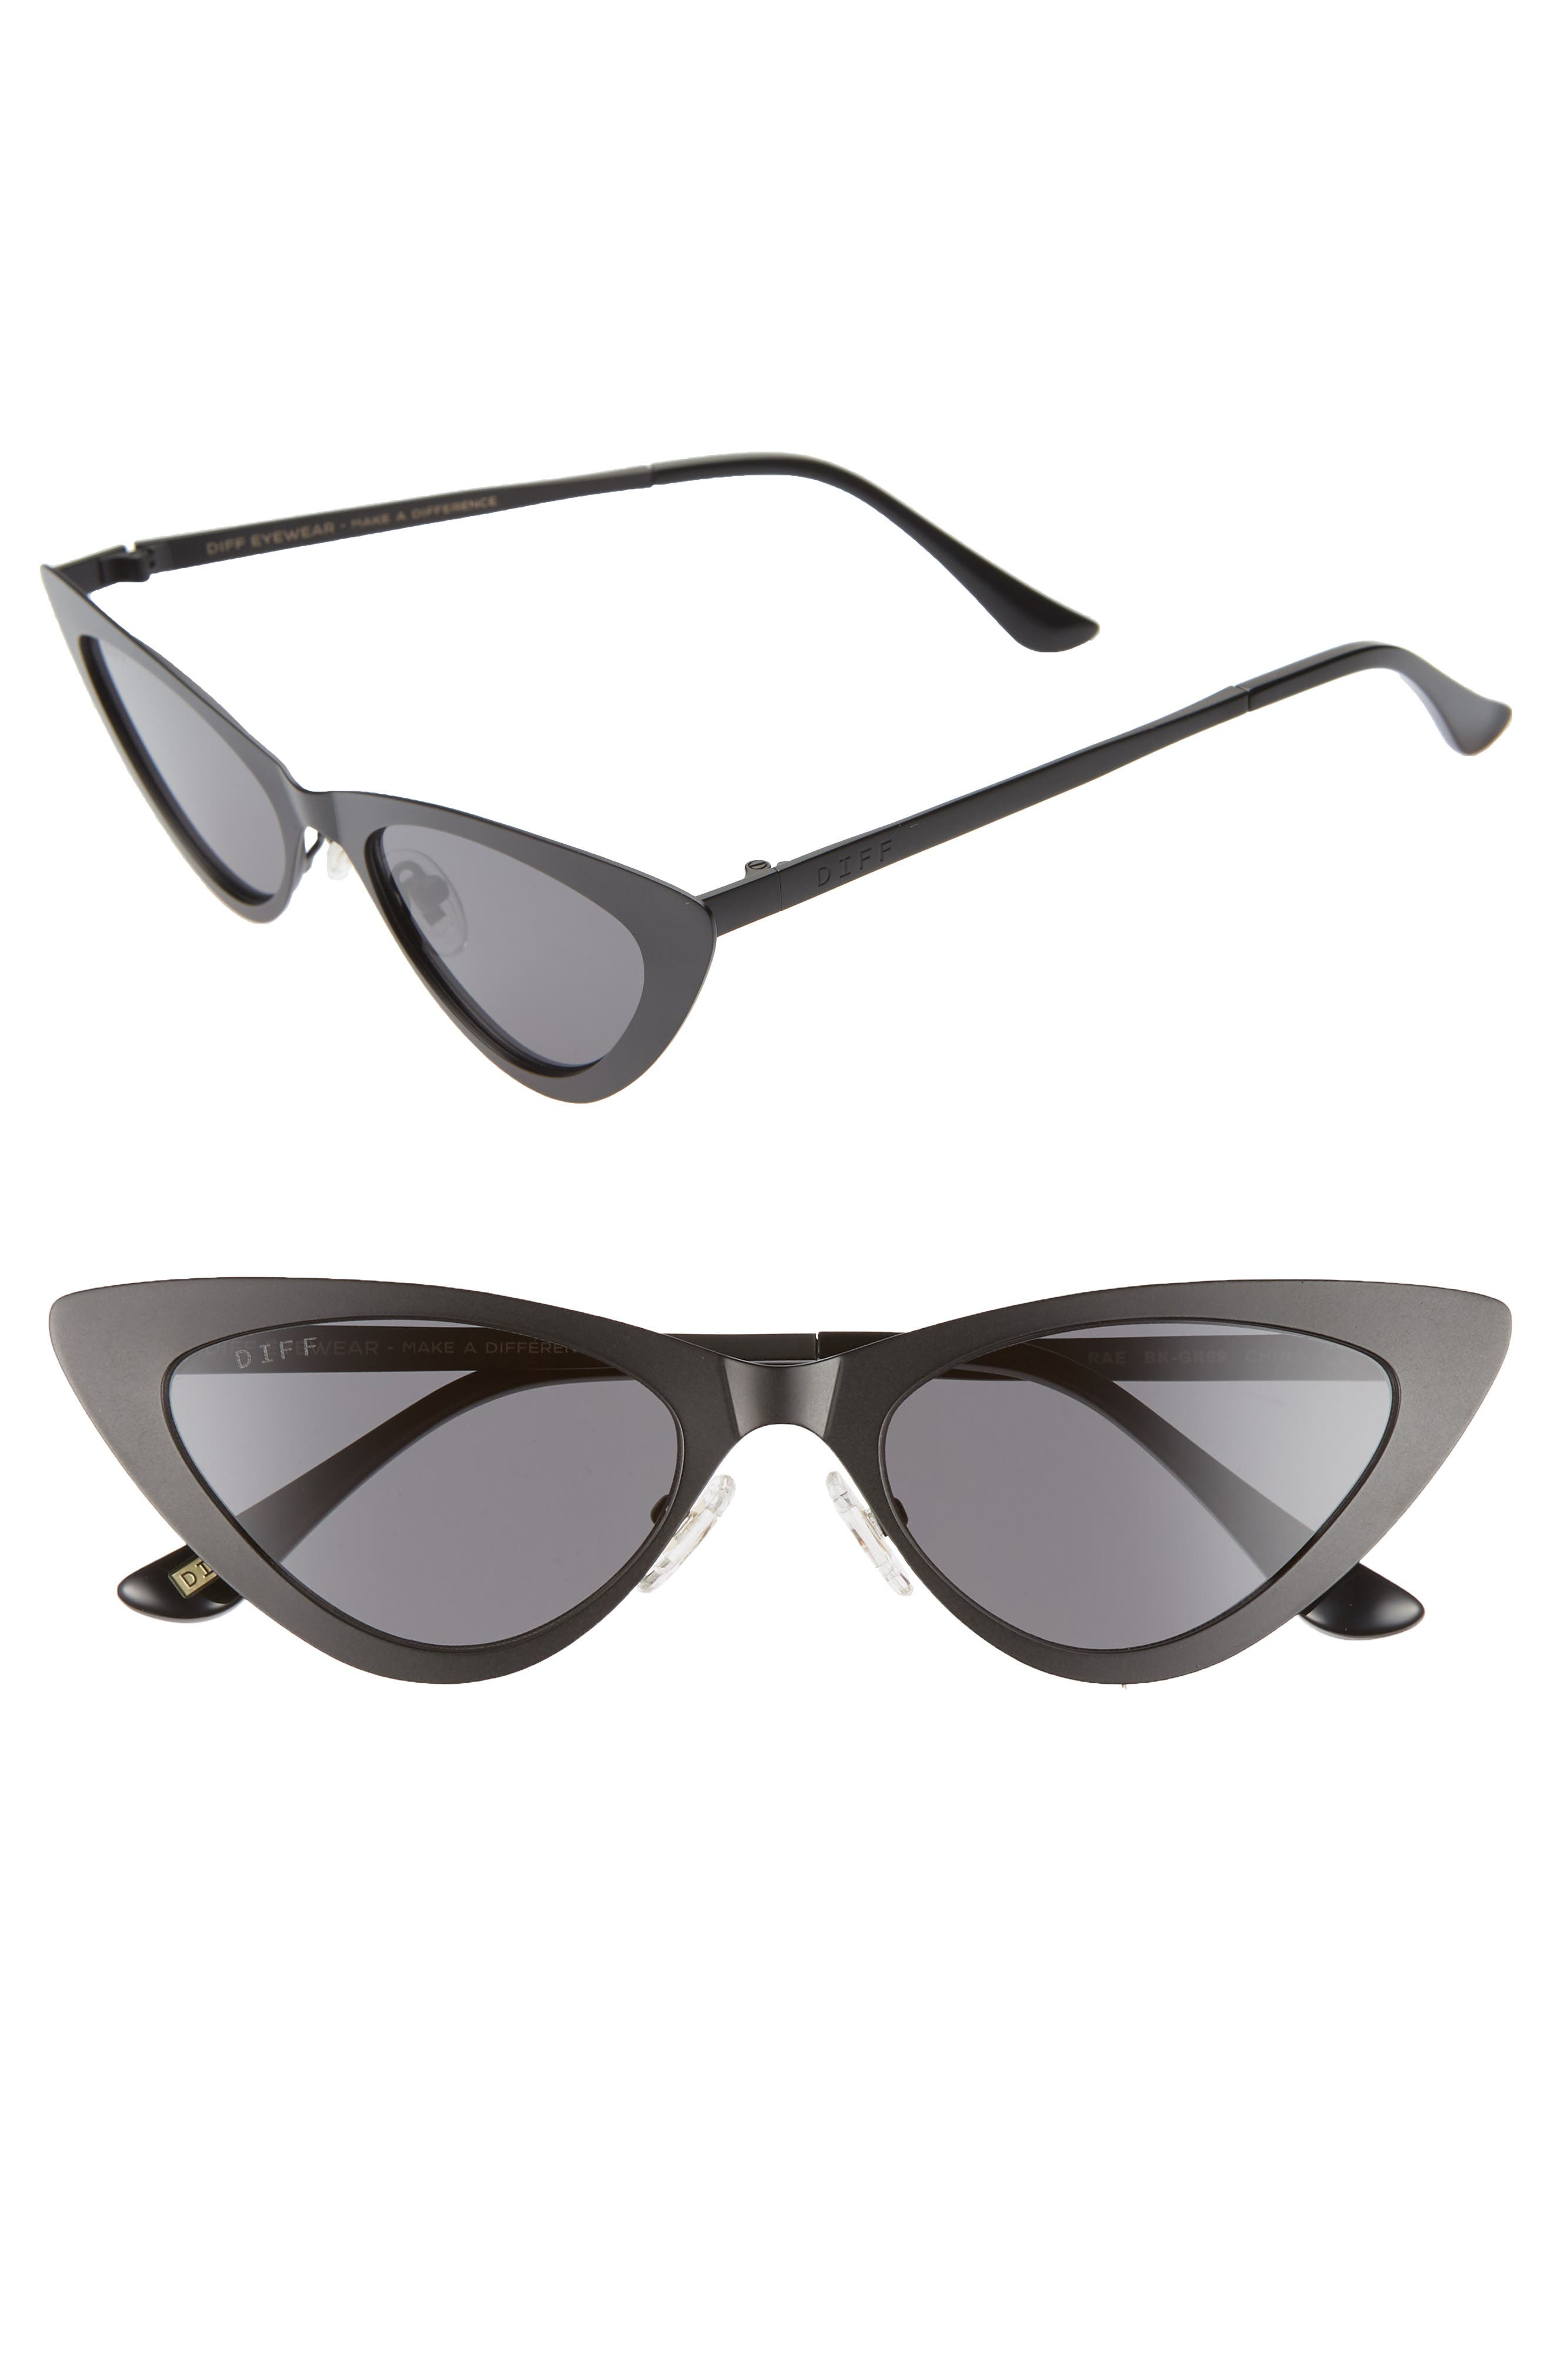 5af6ce59a42c DIFF Sunglasses for Women | Nordstrom